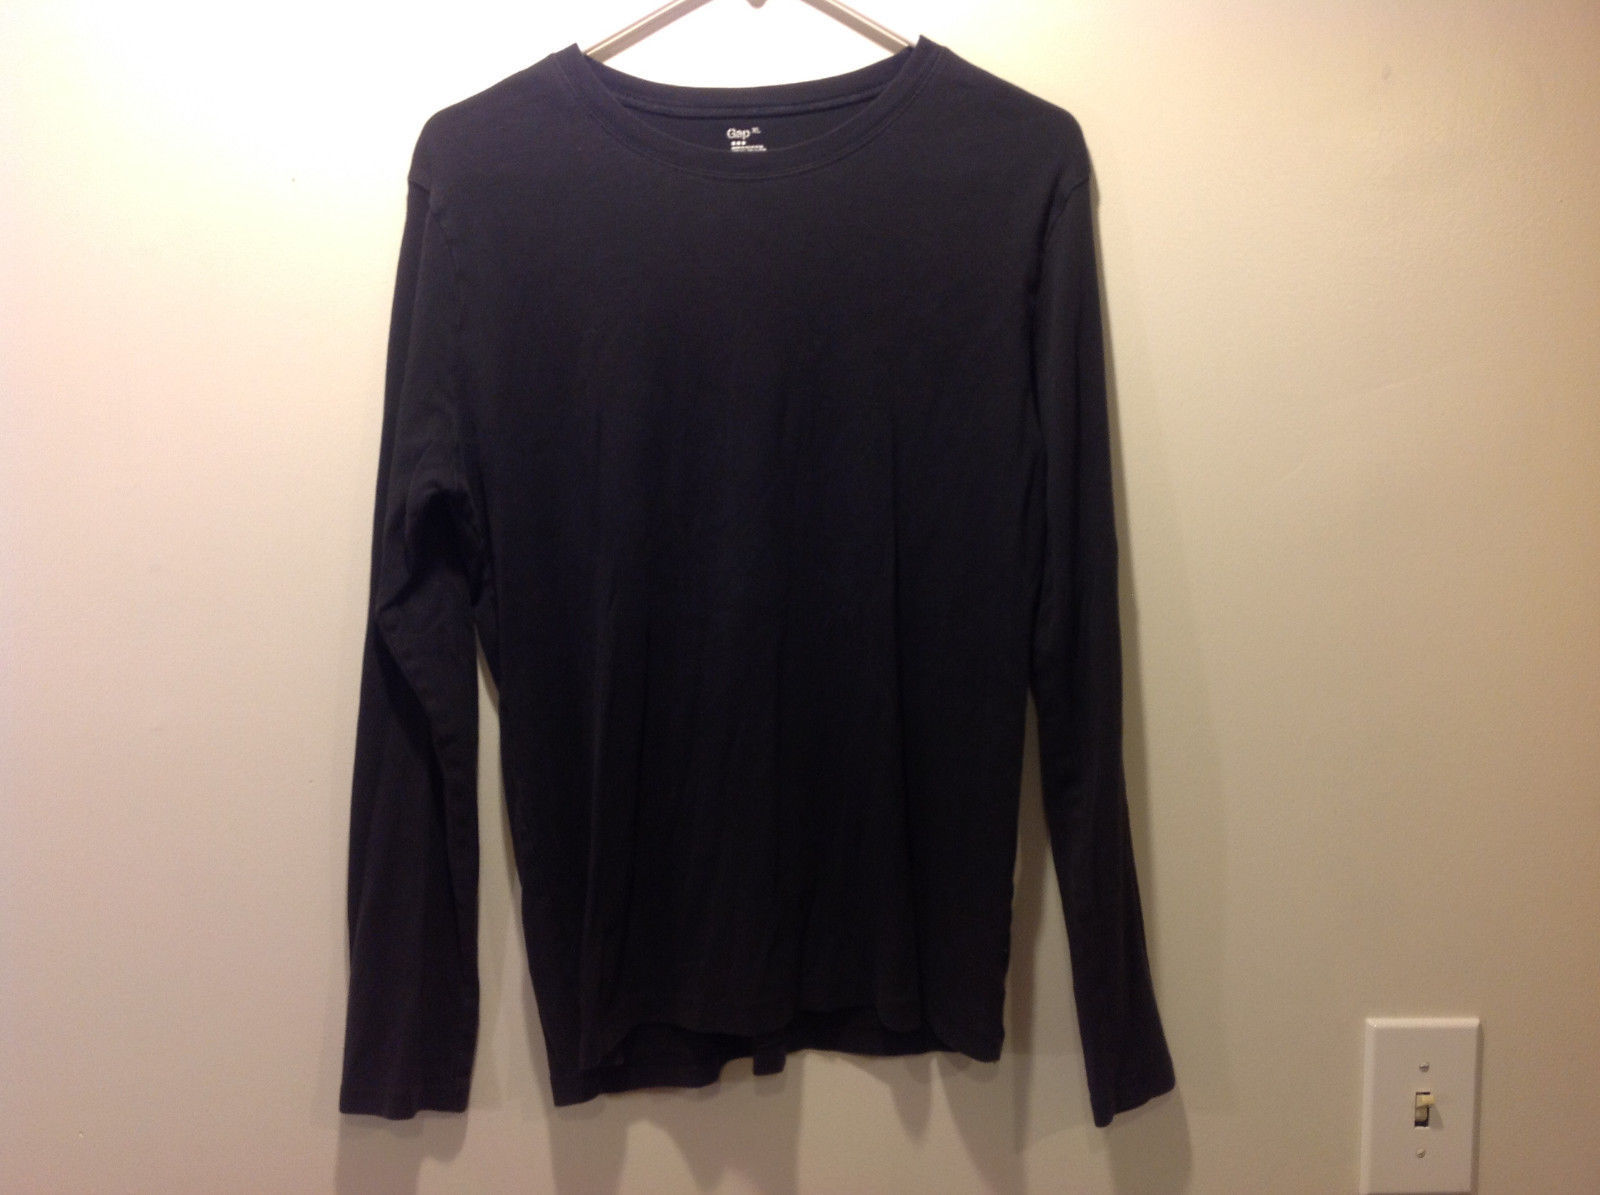 Gap black long sleeve shirt